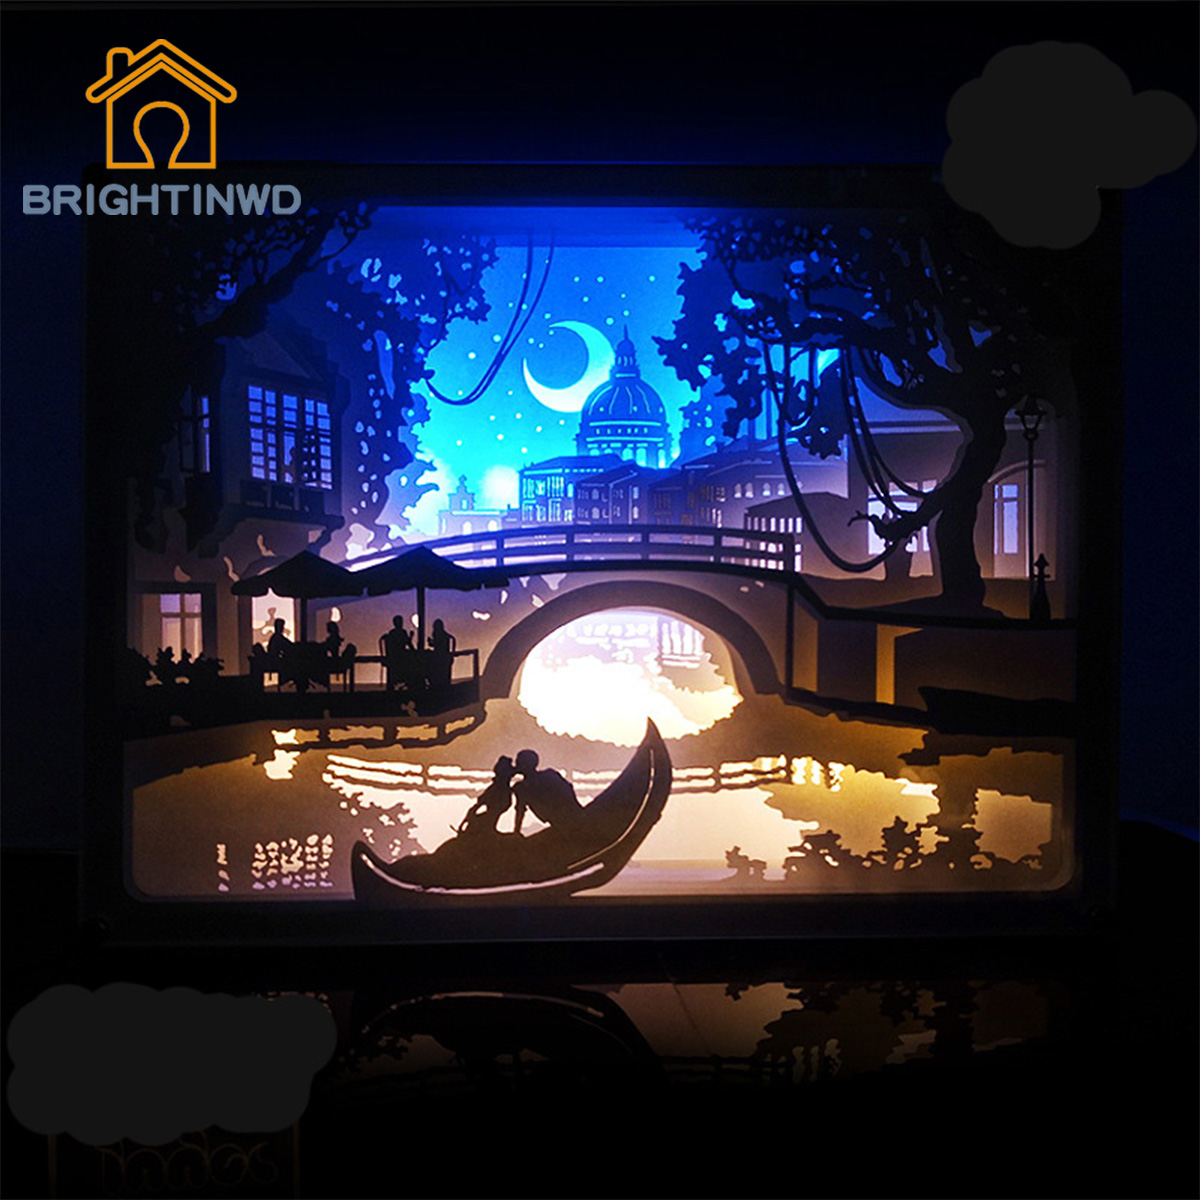 BRIGHTINWD Light Shadow Paper Lanterns Love Venice Bedside Decorative Lamp Night Light Gifts USB Power Supply